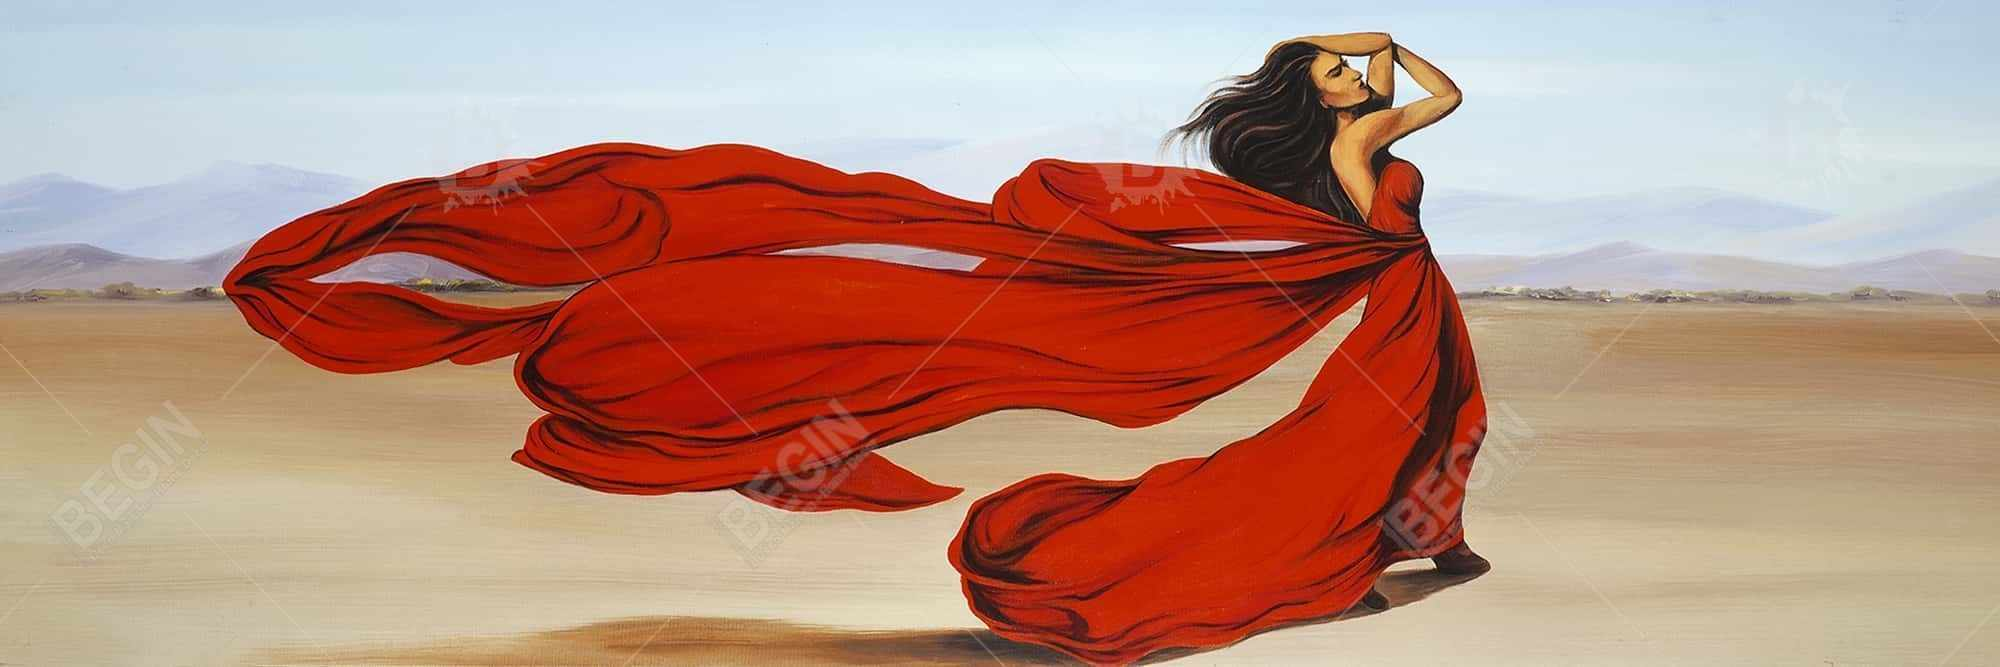 Woman with a long red dress in the desert